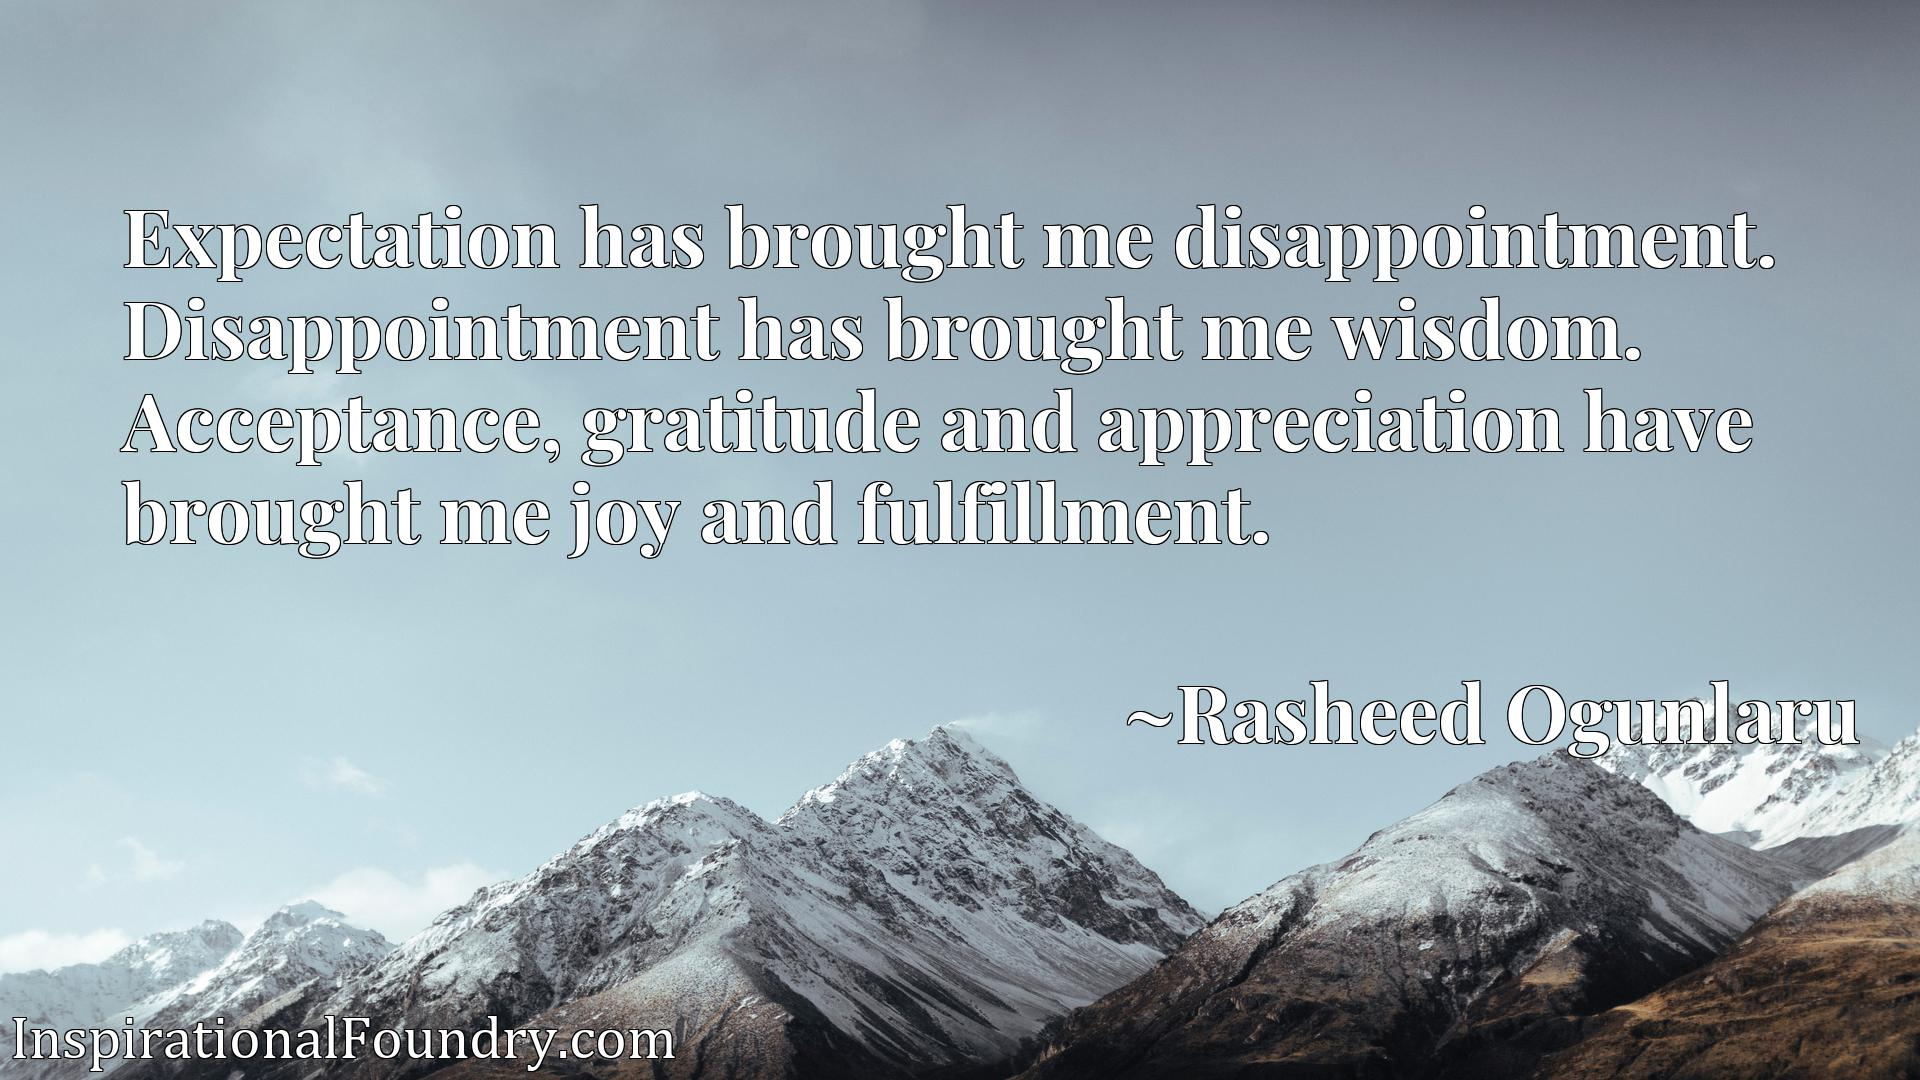 Expectation has brought me disappointment. Disappointment has brought me wisdom. Acceptance, gratitude and appreciation have brought me joy and fulfillment.